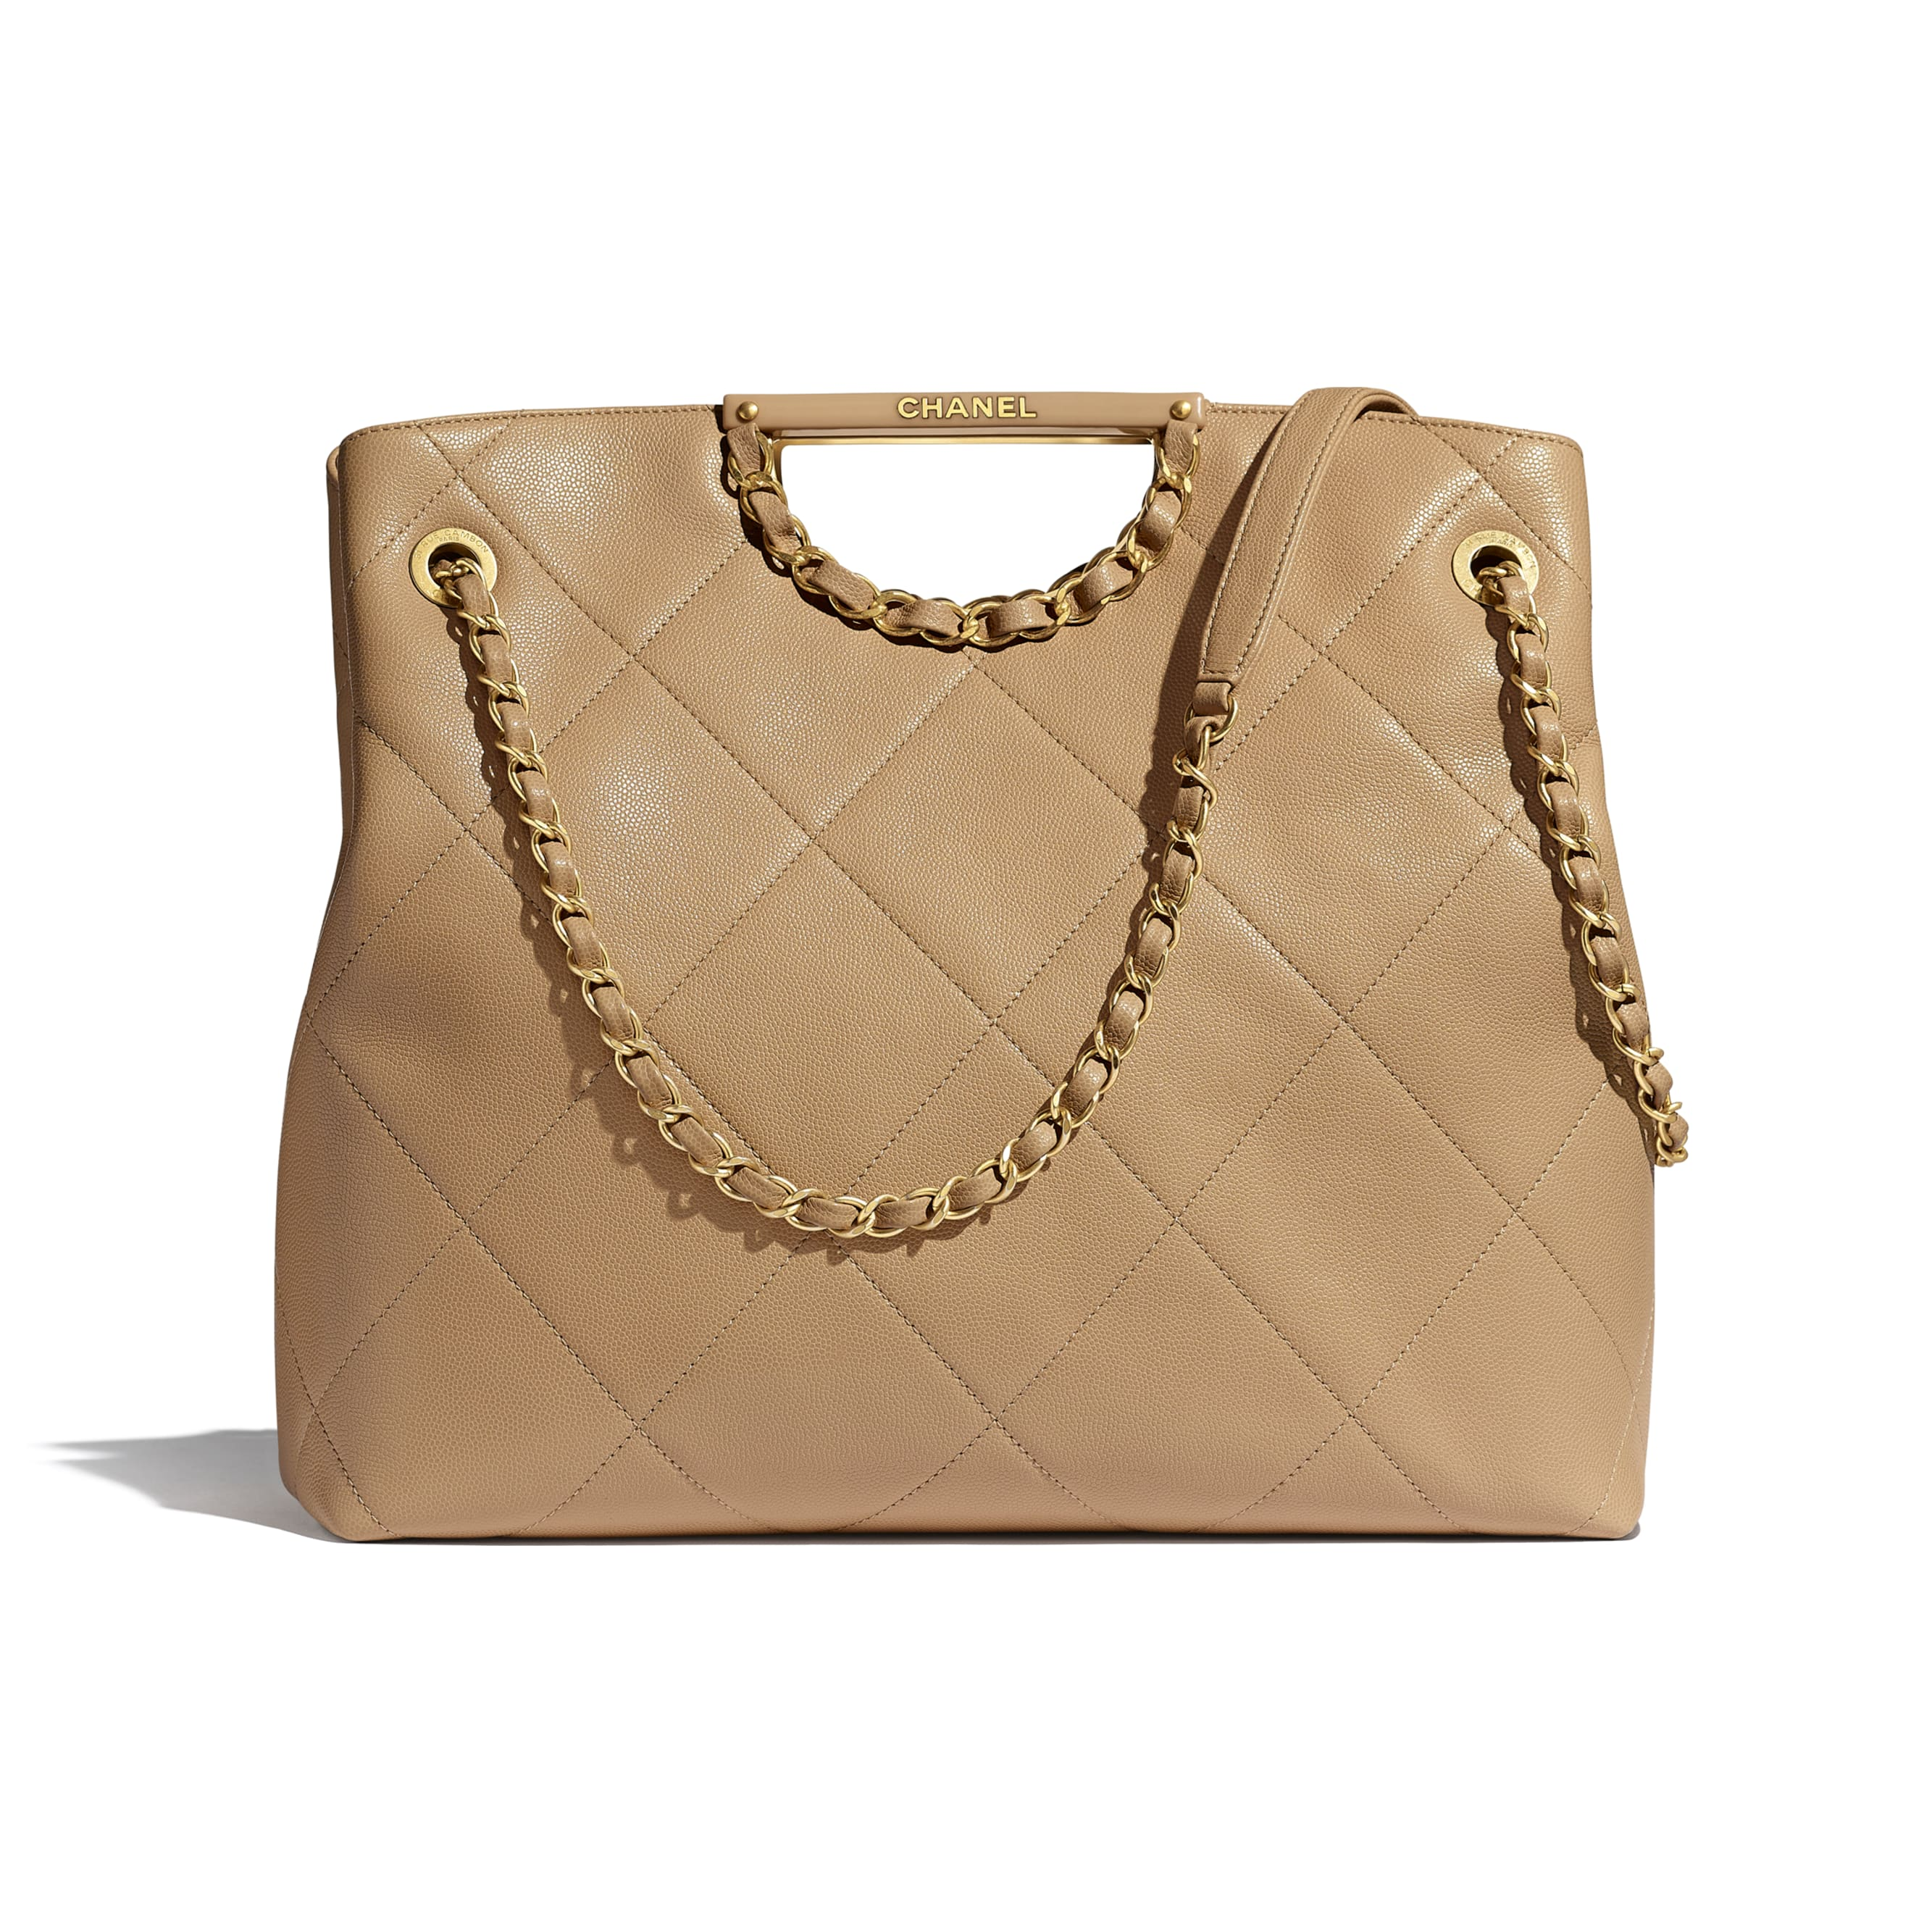 Large Tote - Beige - Grained Calfskin & Gold-Tone Metal - CHANEL - Default view - see standard sized version